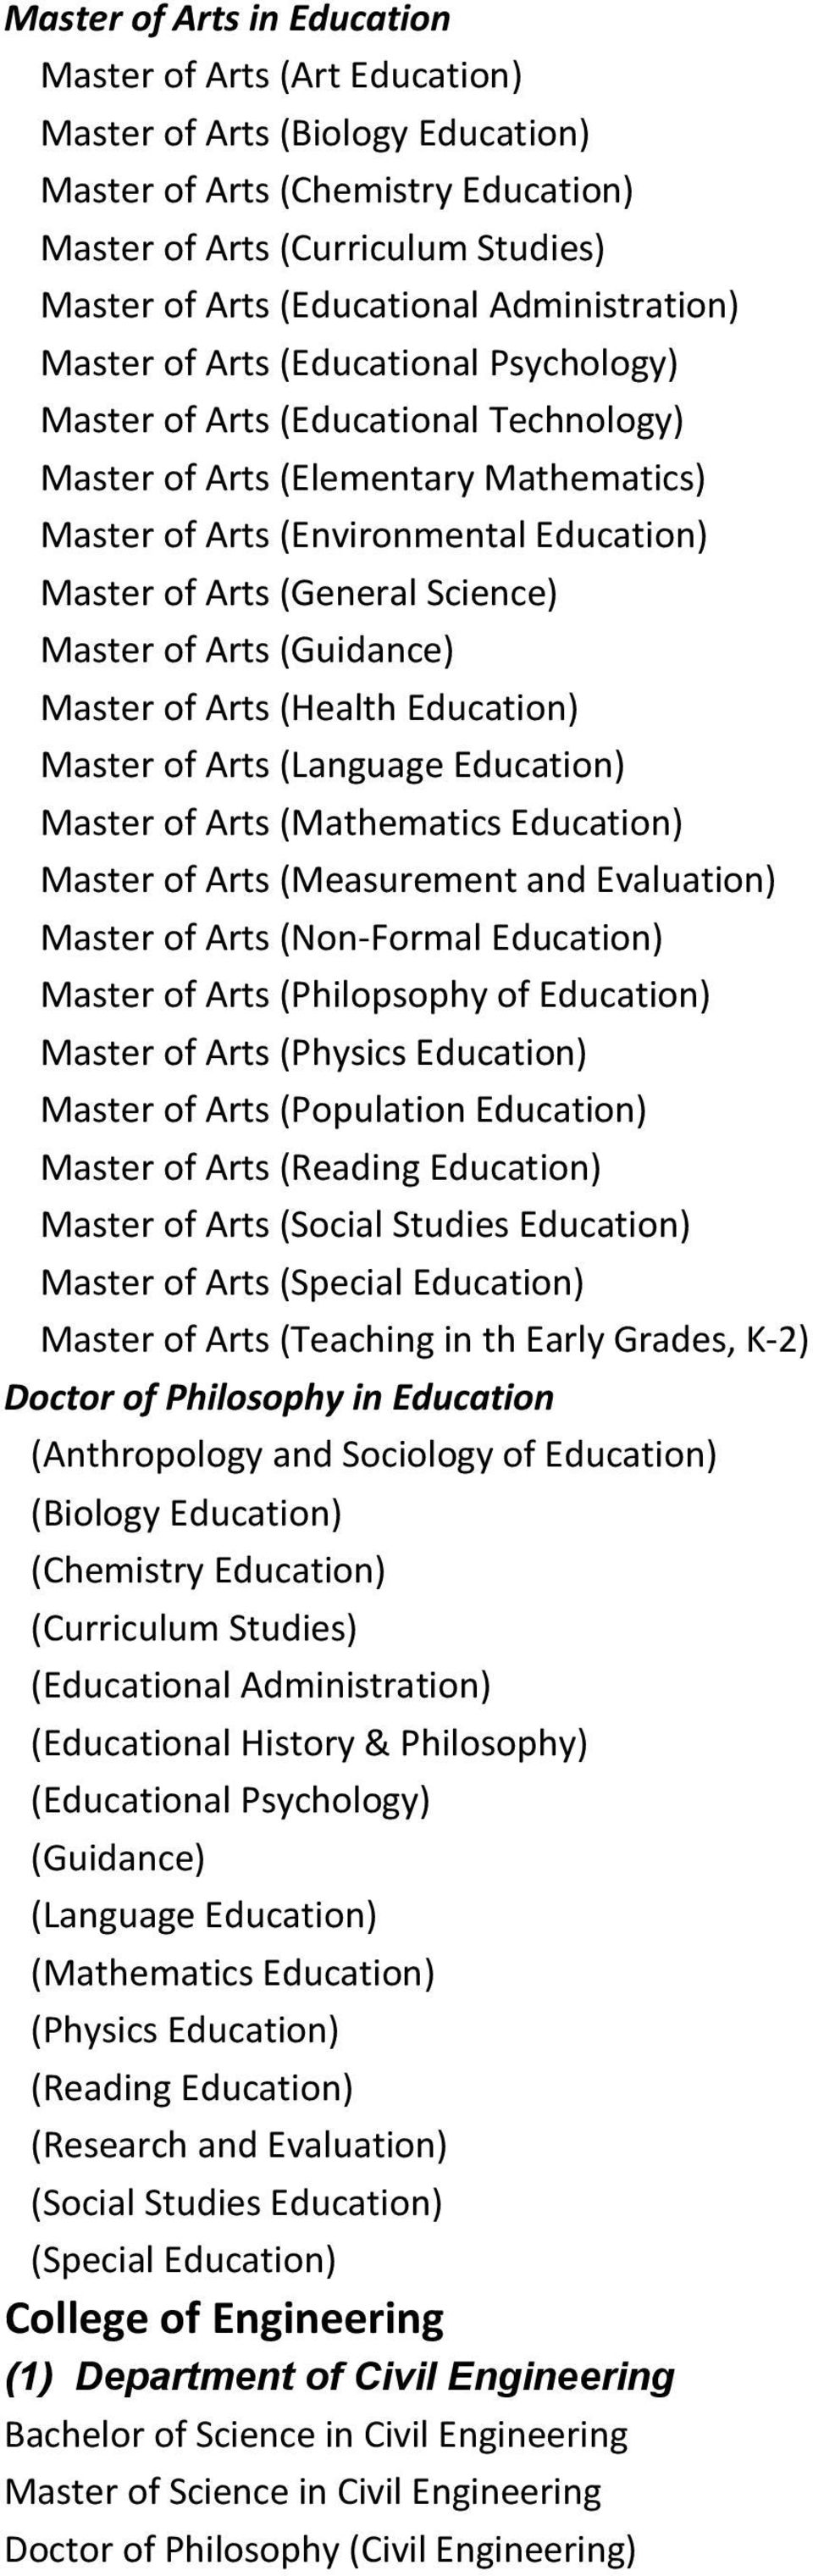 (General Science) Master of Arts (Guidance) Master of Arts (Health Education) Master of Arts (Language Education) Master of Arts (Mathematics Education) Master of Arts (Measurement and Evaluation)